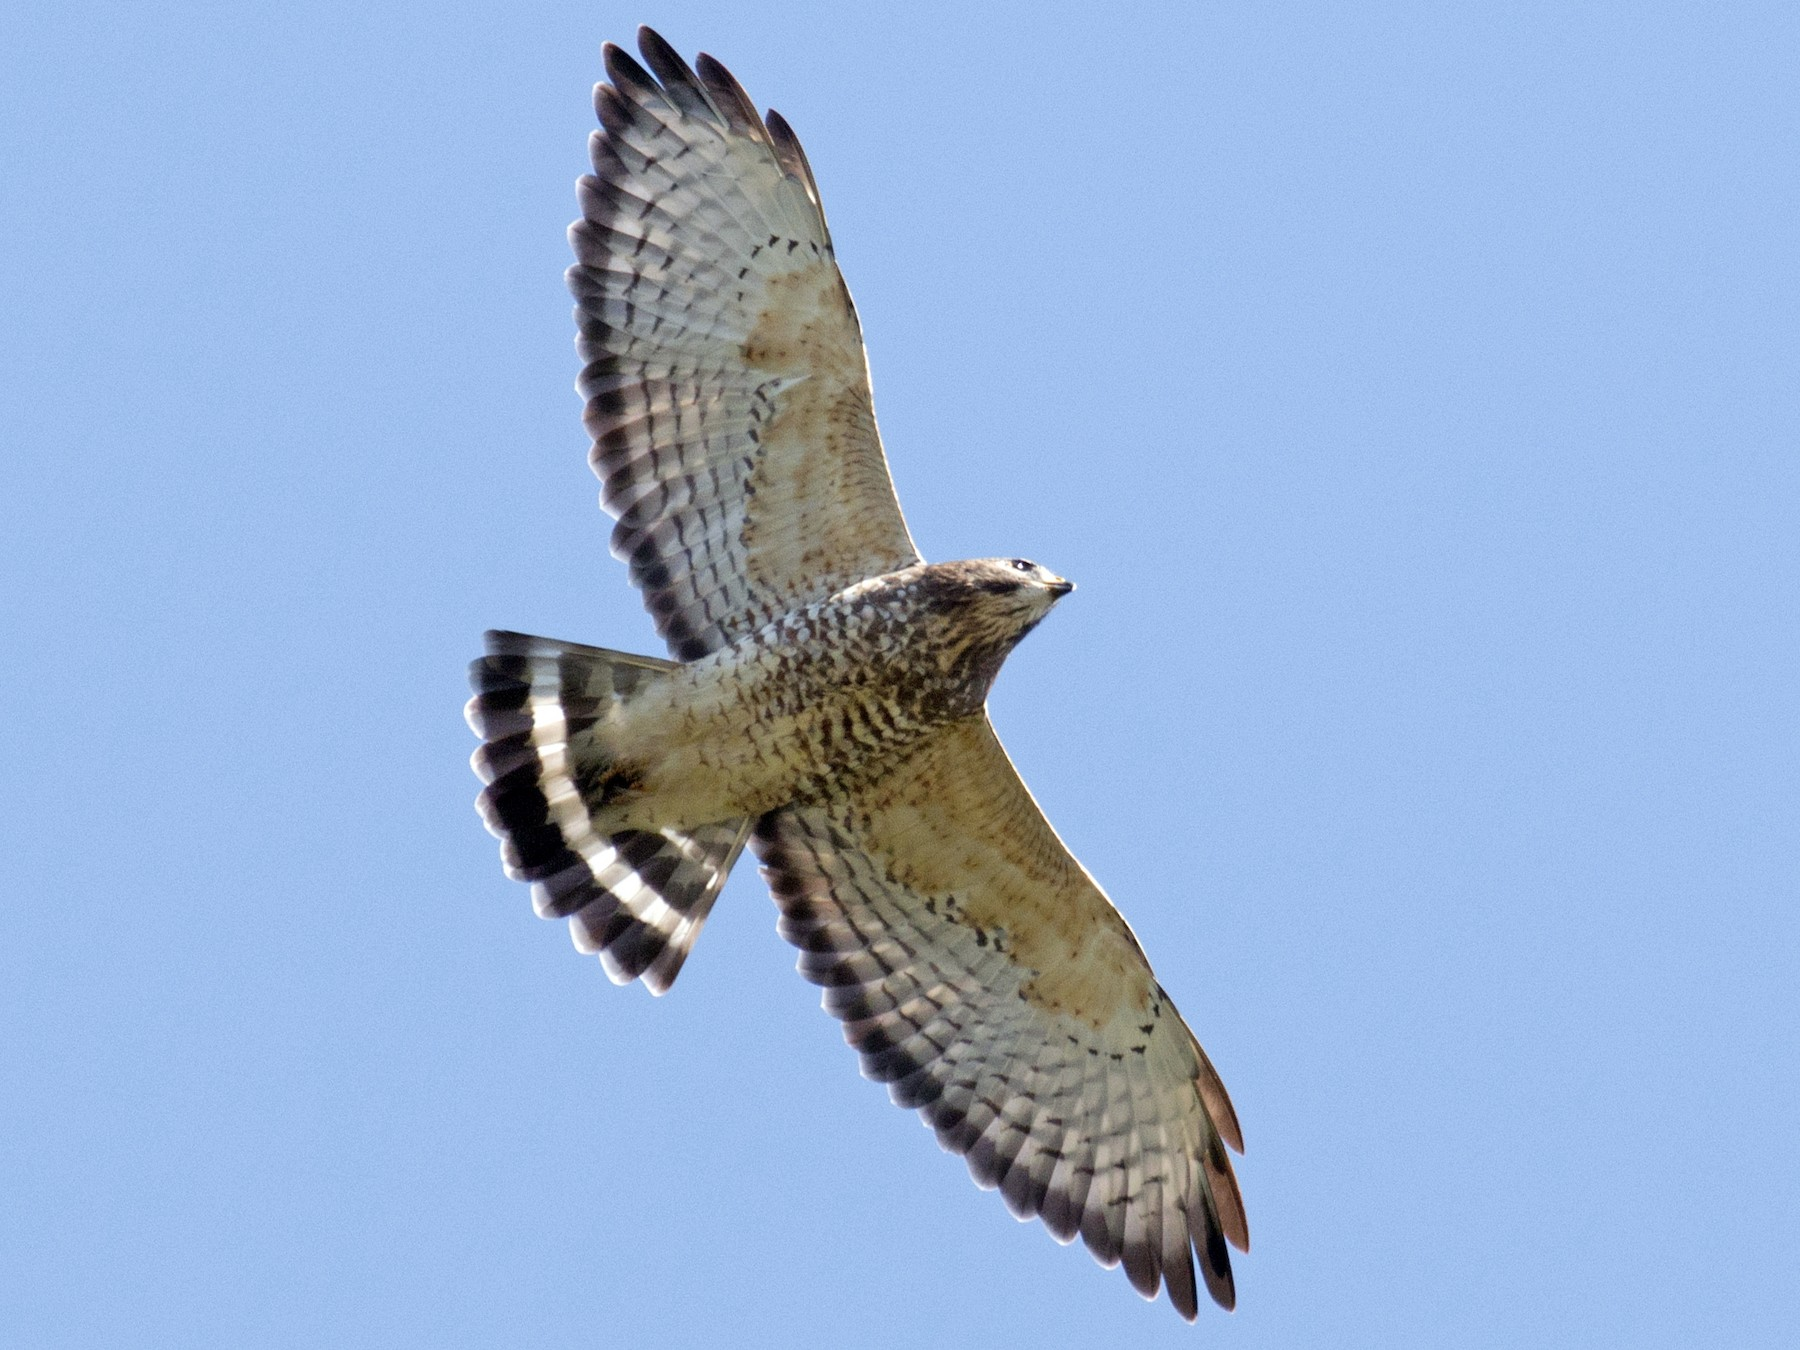 Broad-winged Hawk - David Brown